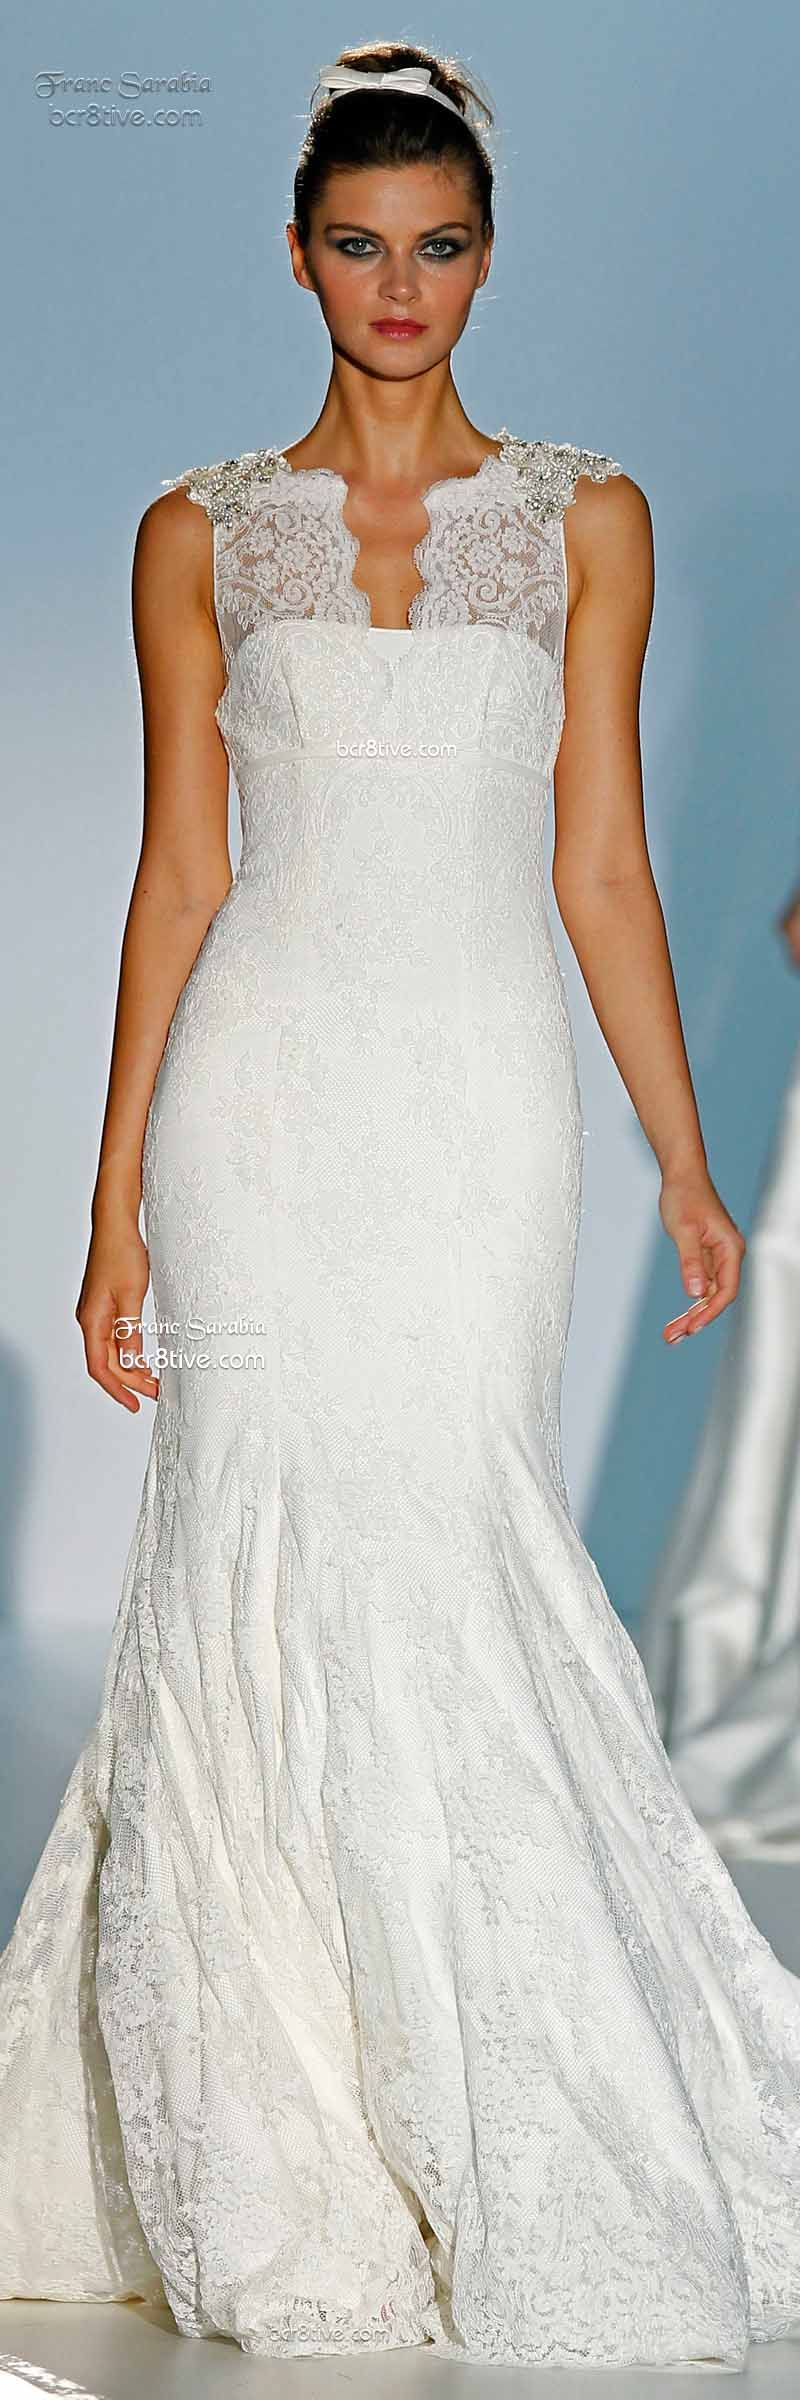 Barcelona Bridal Spring 2015 in 2020 dresses